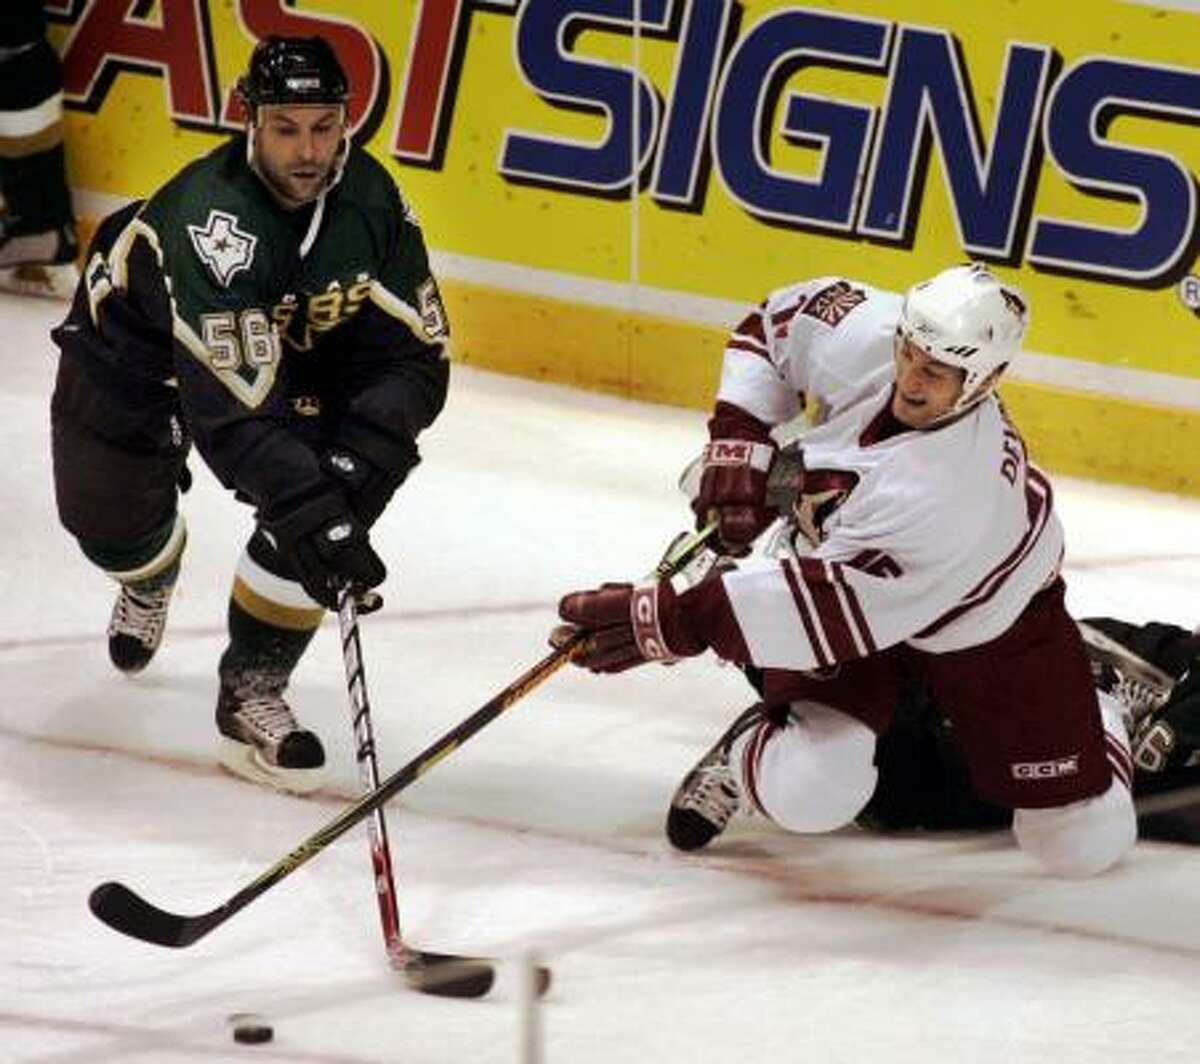 The Dallas Stars and the Phoenix Coyotes will be coming to town in September.